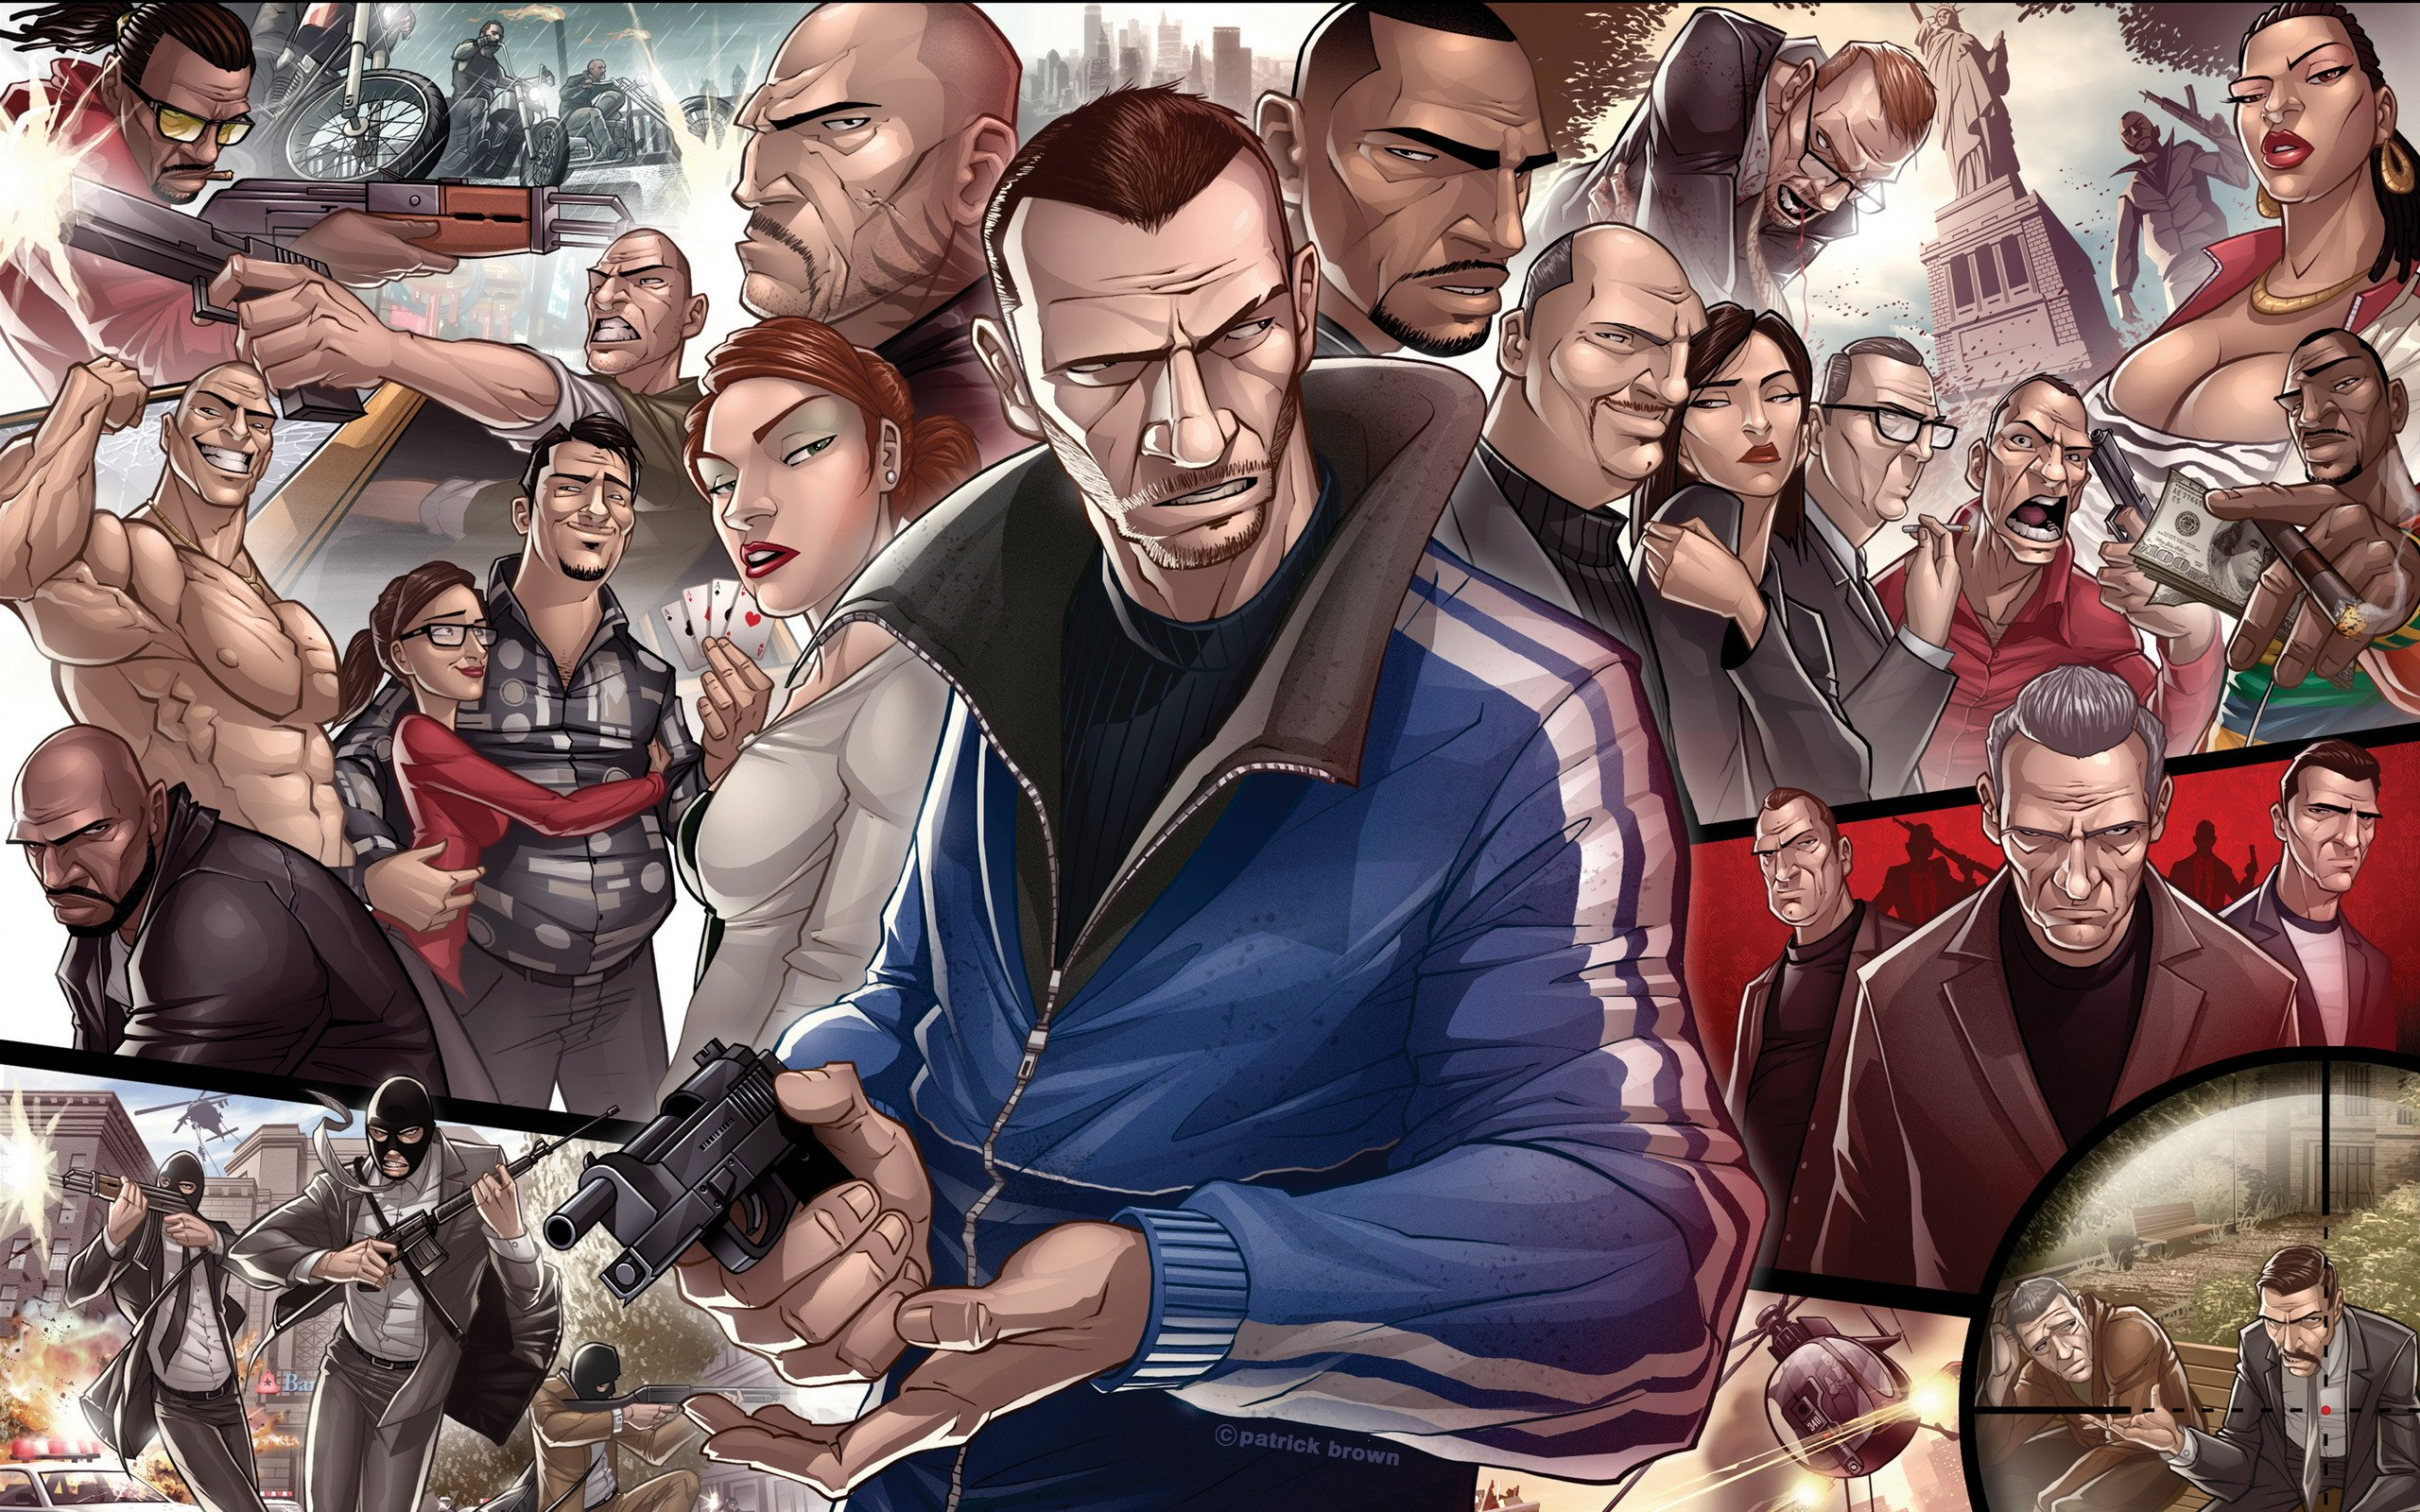 Grand Theft Auto IV Characters Wallpapers HD Wallpapers 2560x1600